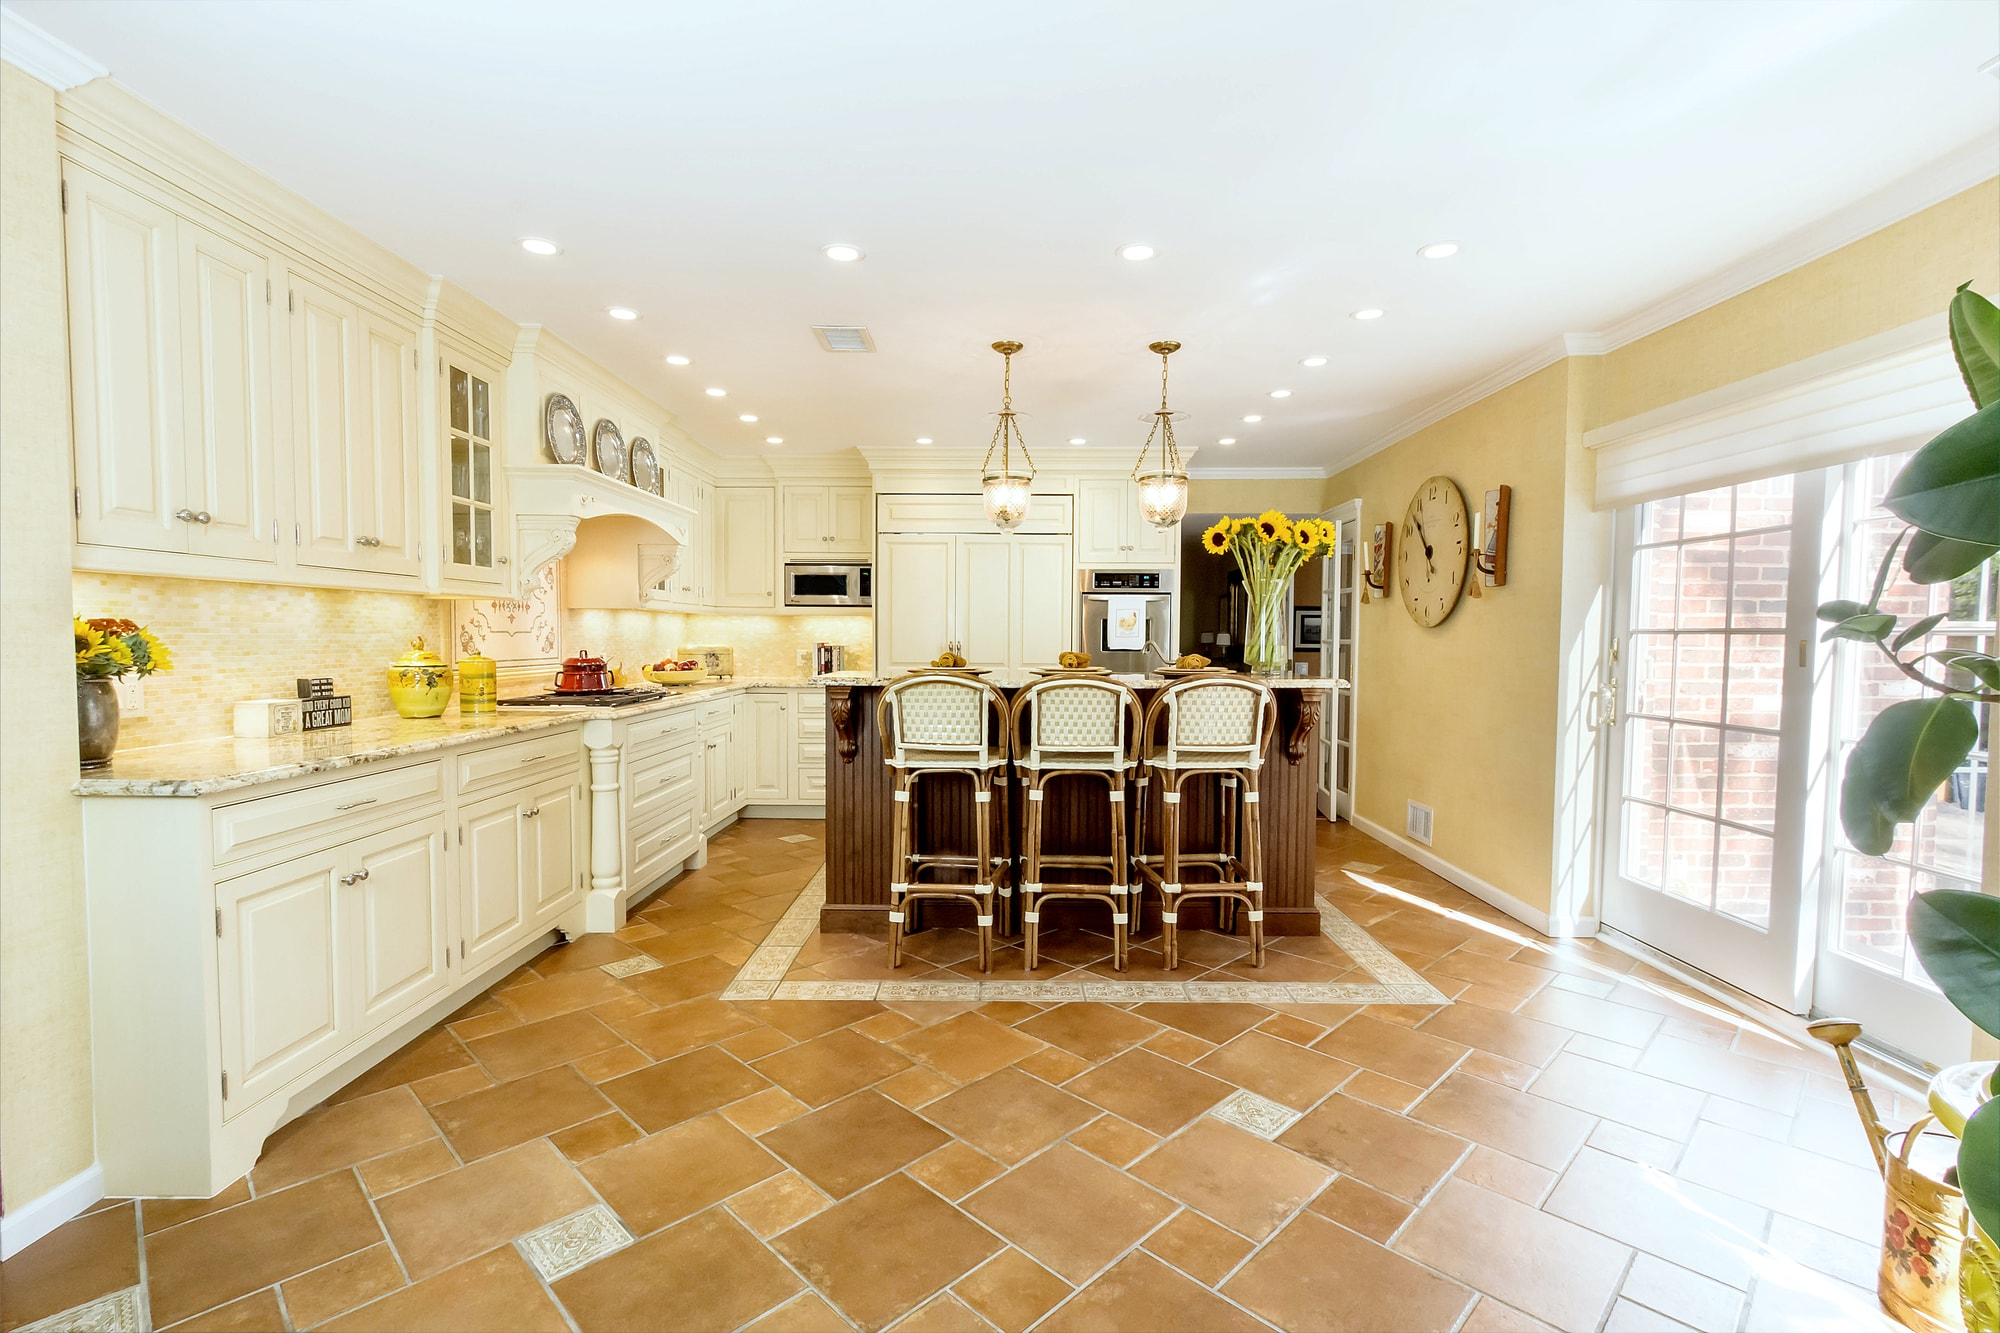 Traditional style kitchen with spacious floor and brown tile